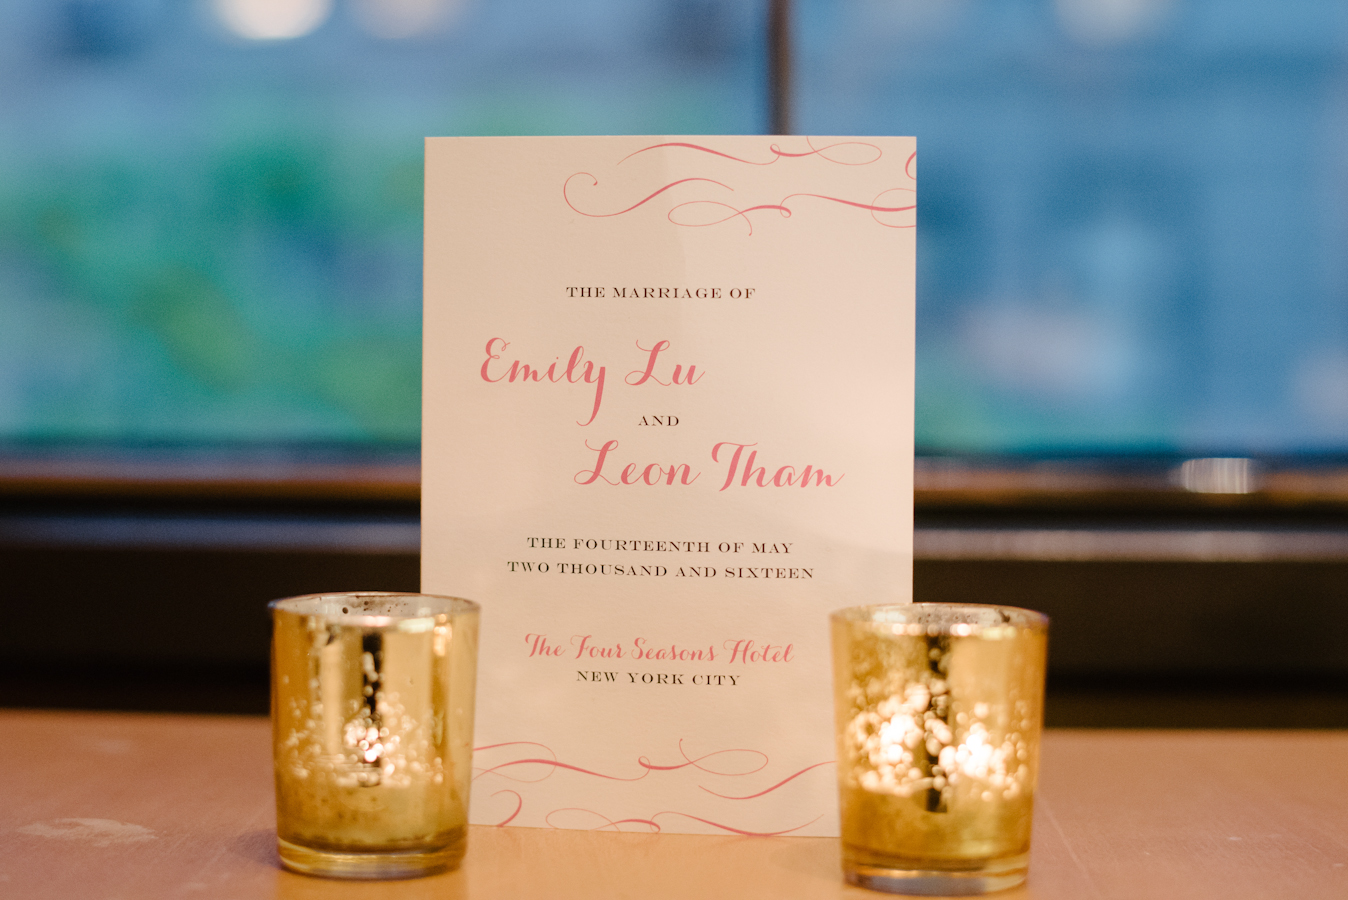 four seasons hotel wedding ang weddings and events brian hatton photography-23.jpg